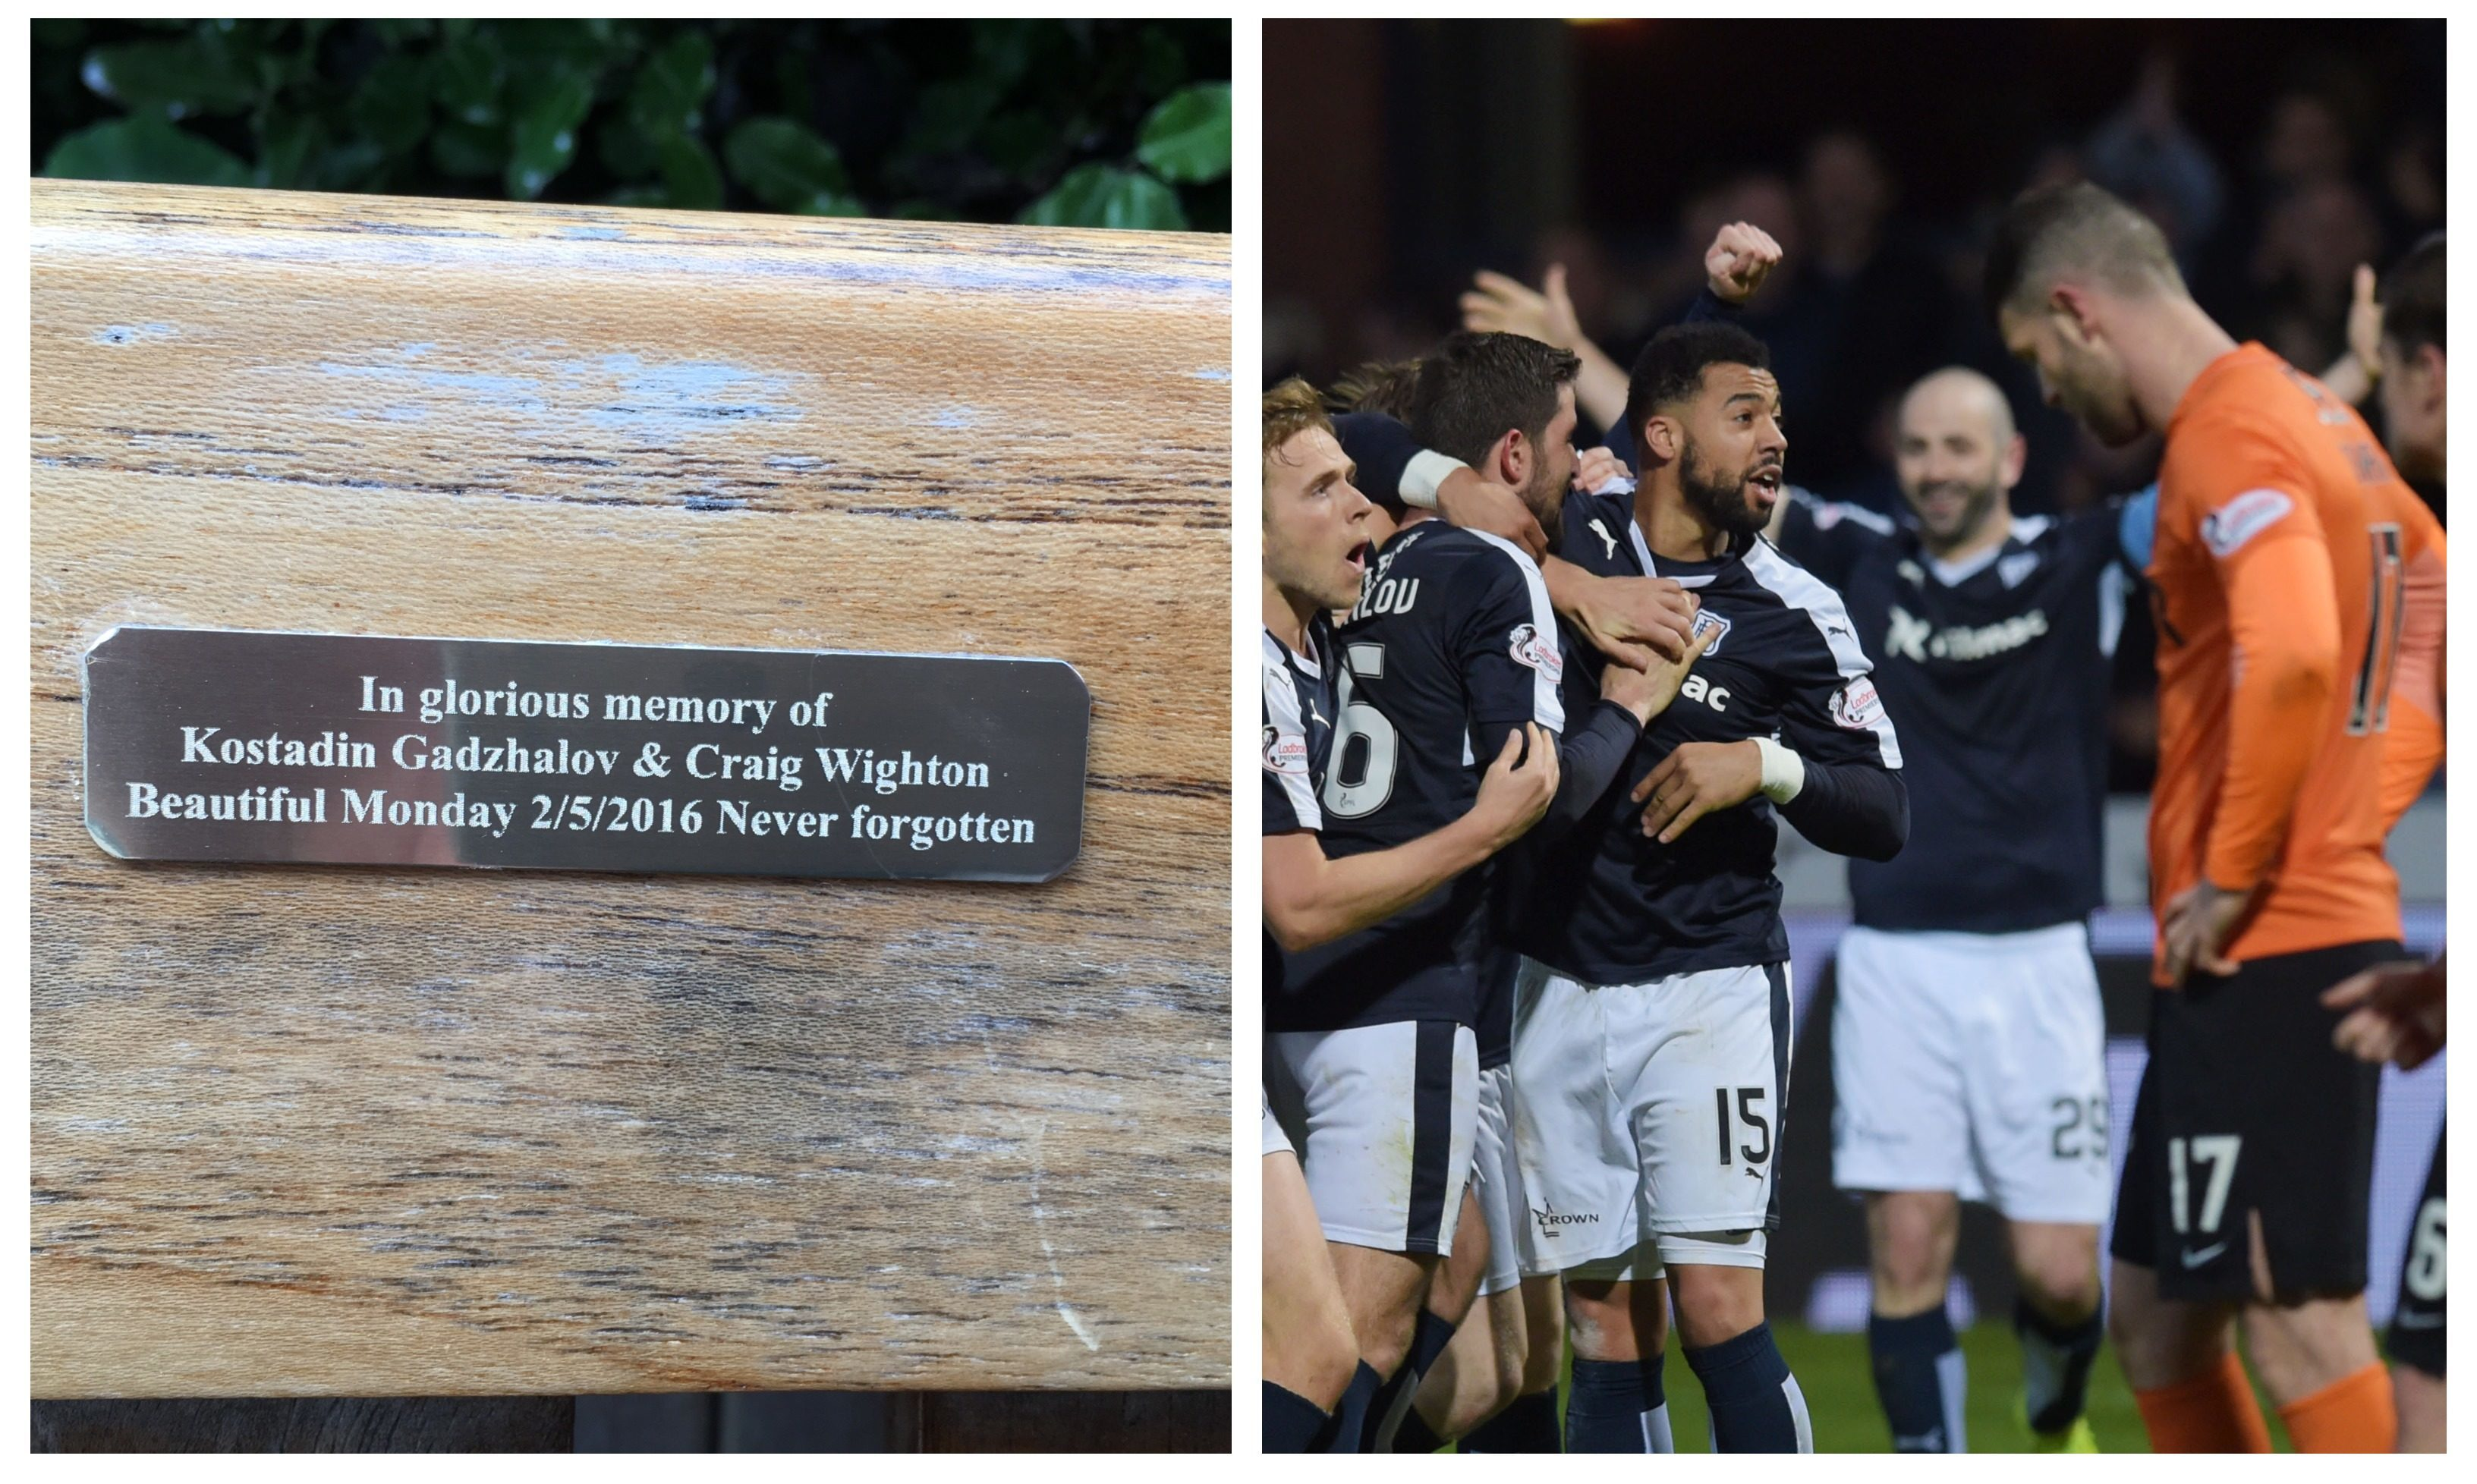 The plaque and a photo from the 'Doon Derby'.